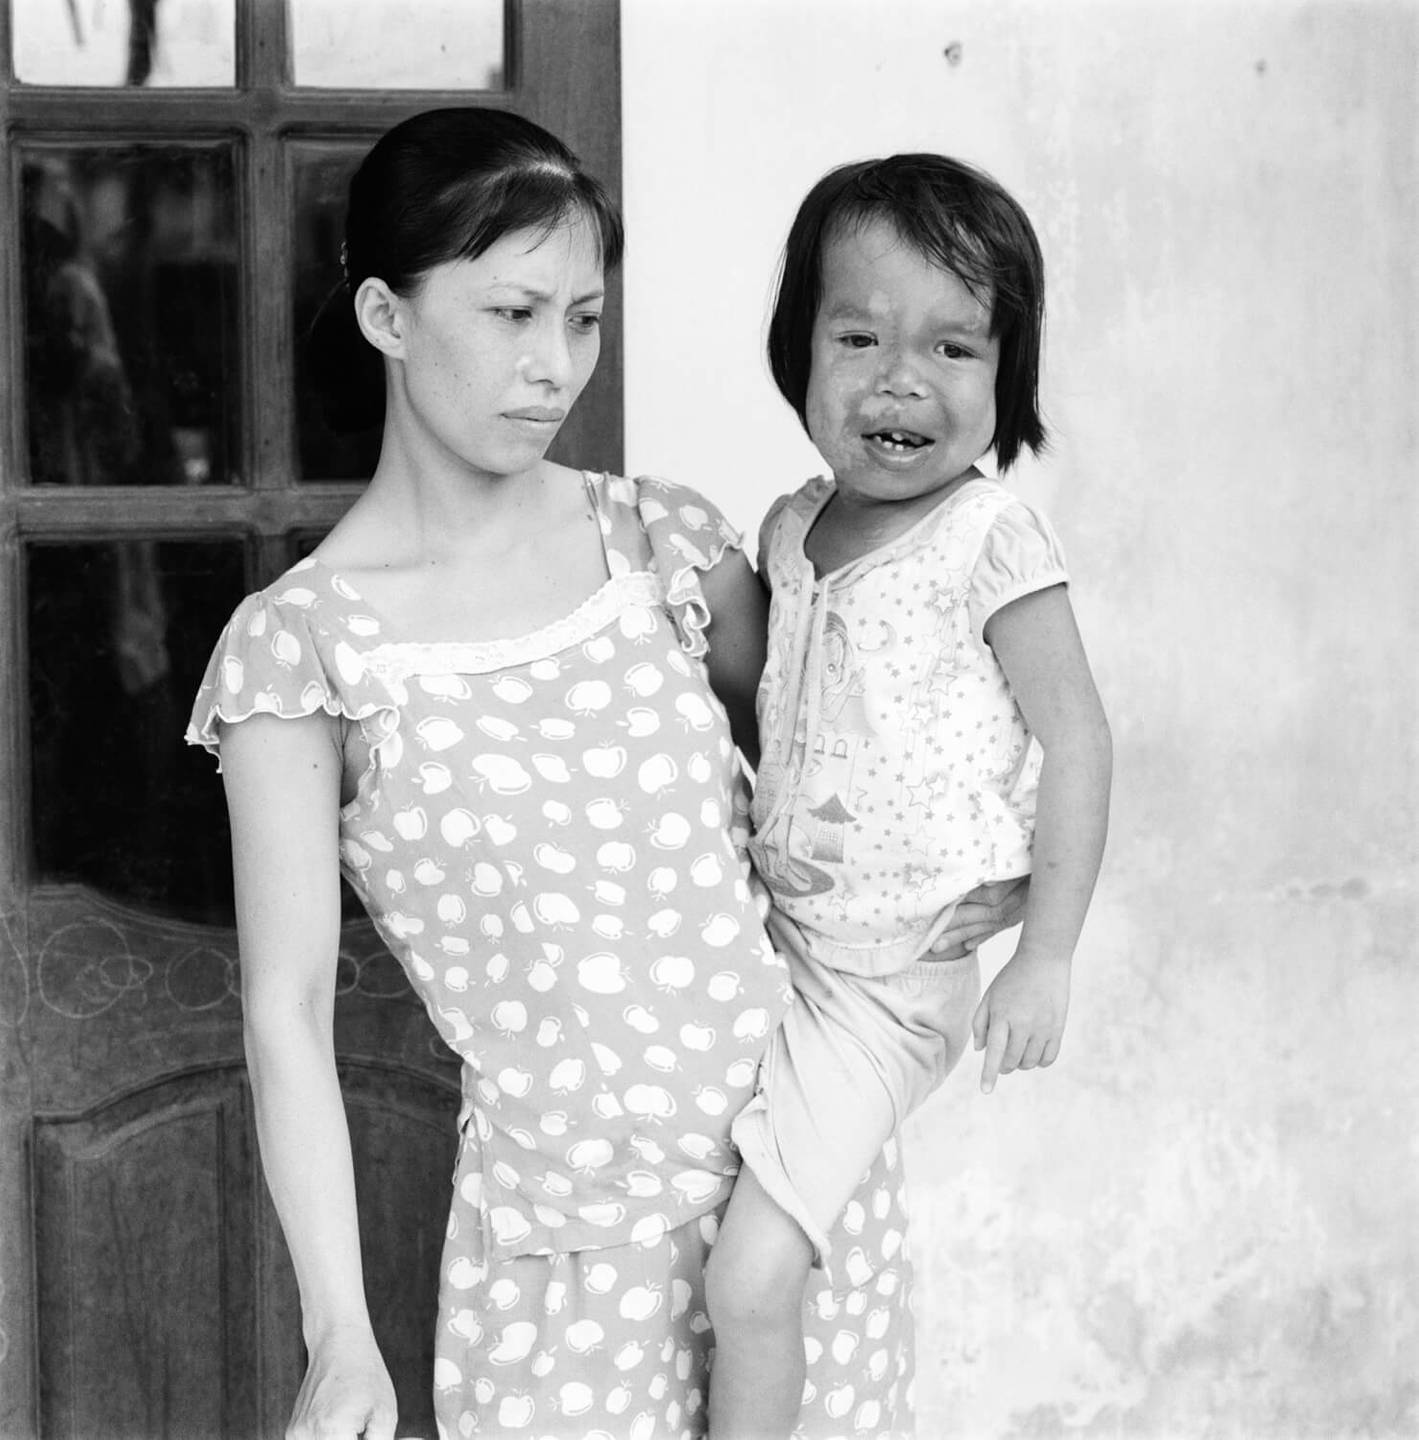 A sad-looking Asian woman holding a crying, deformed child.